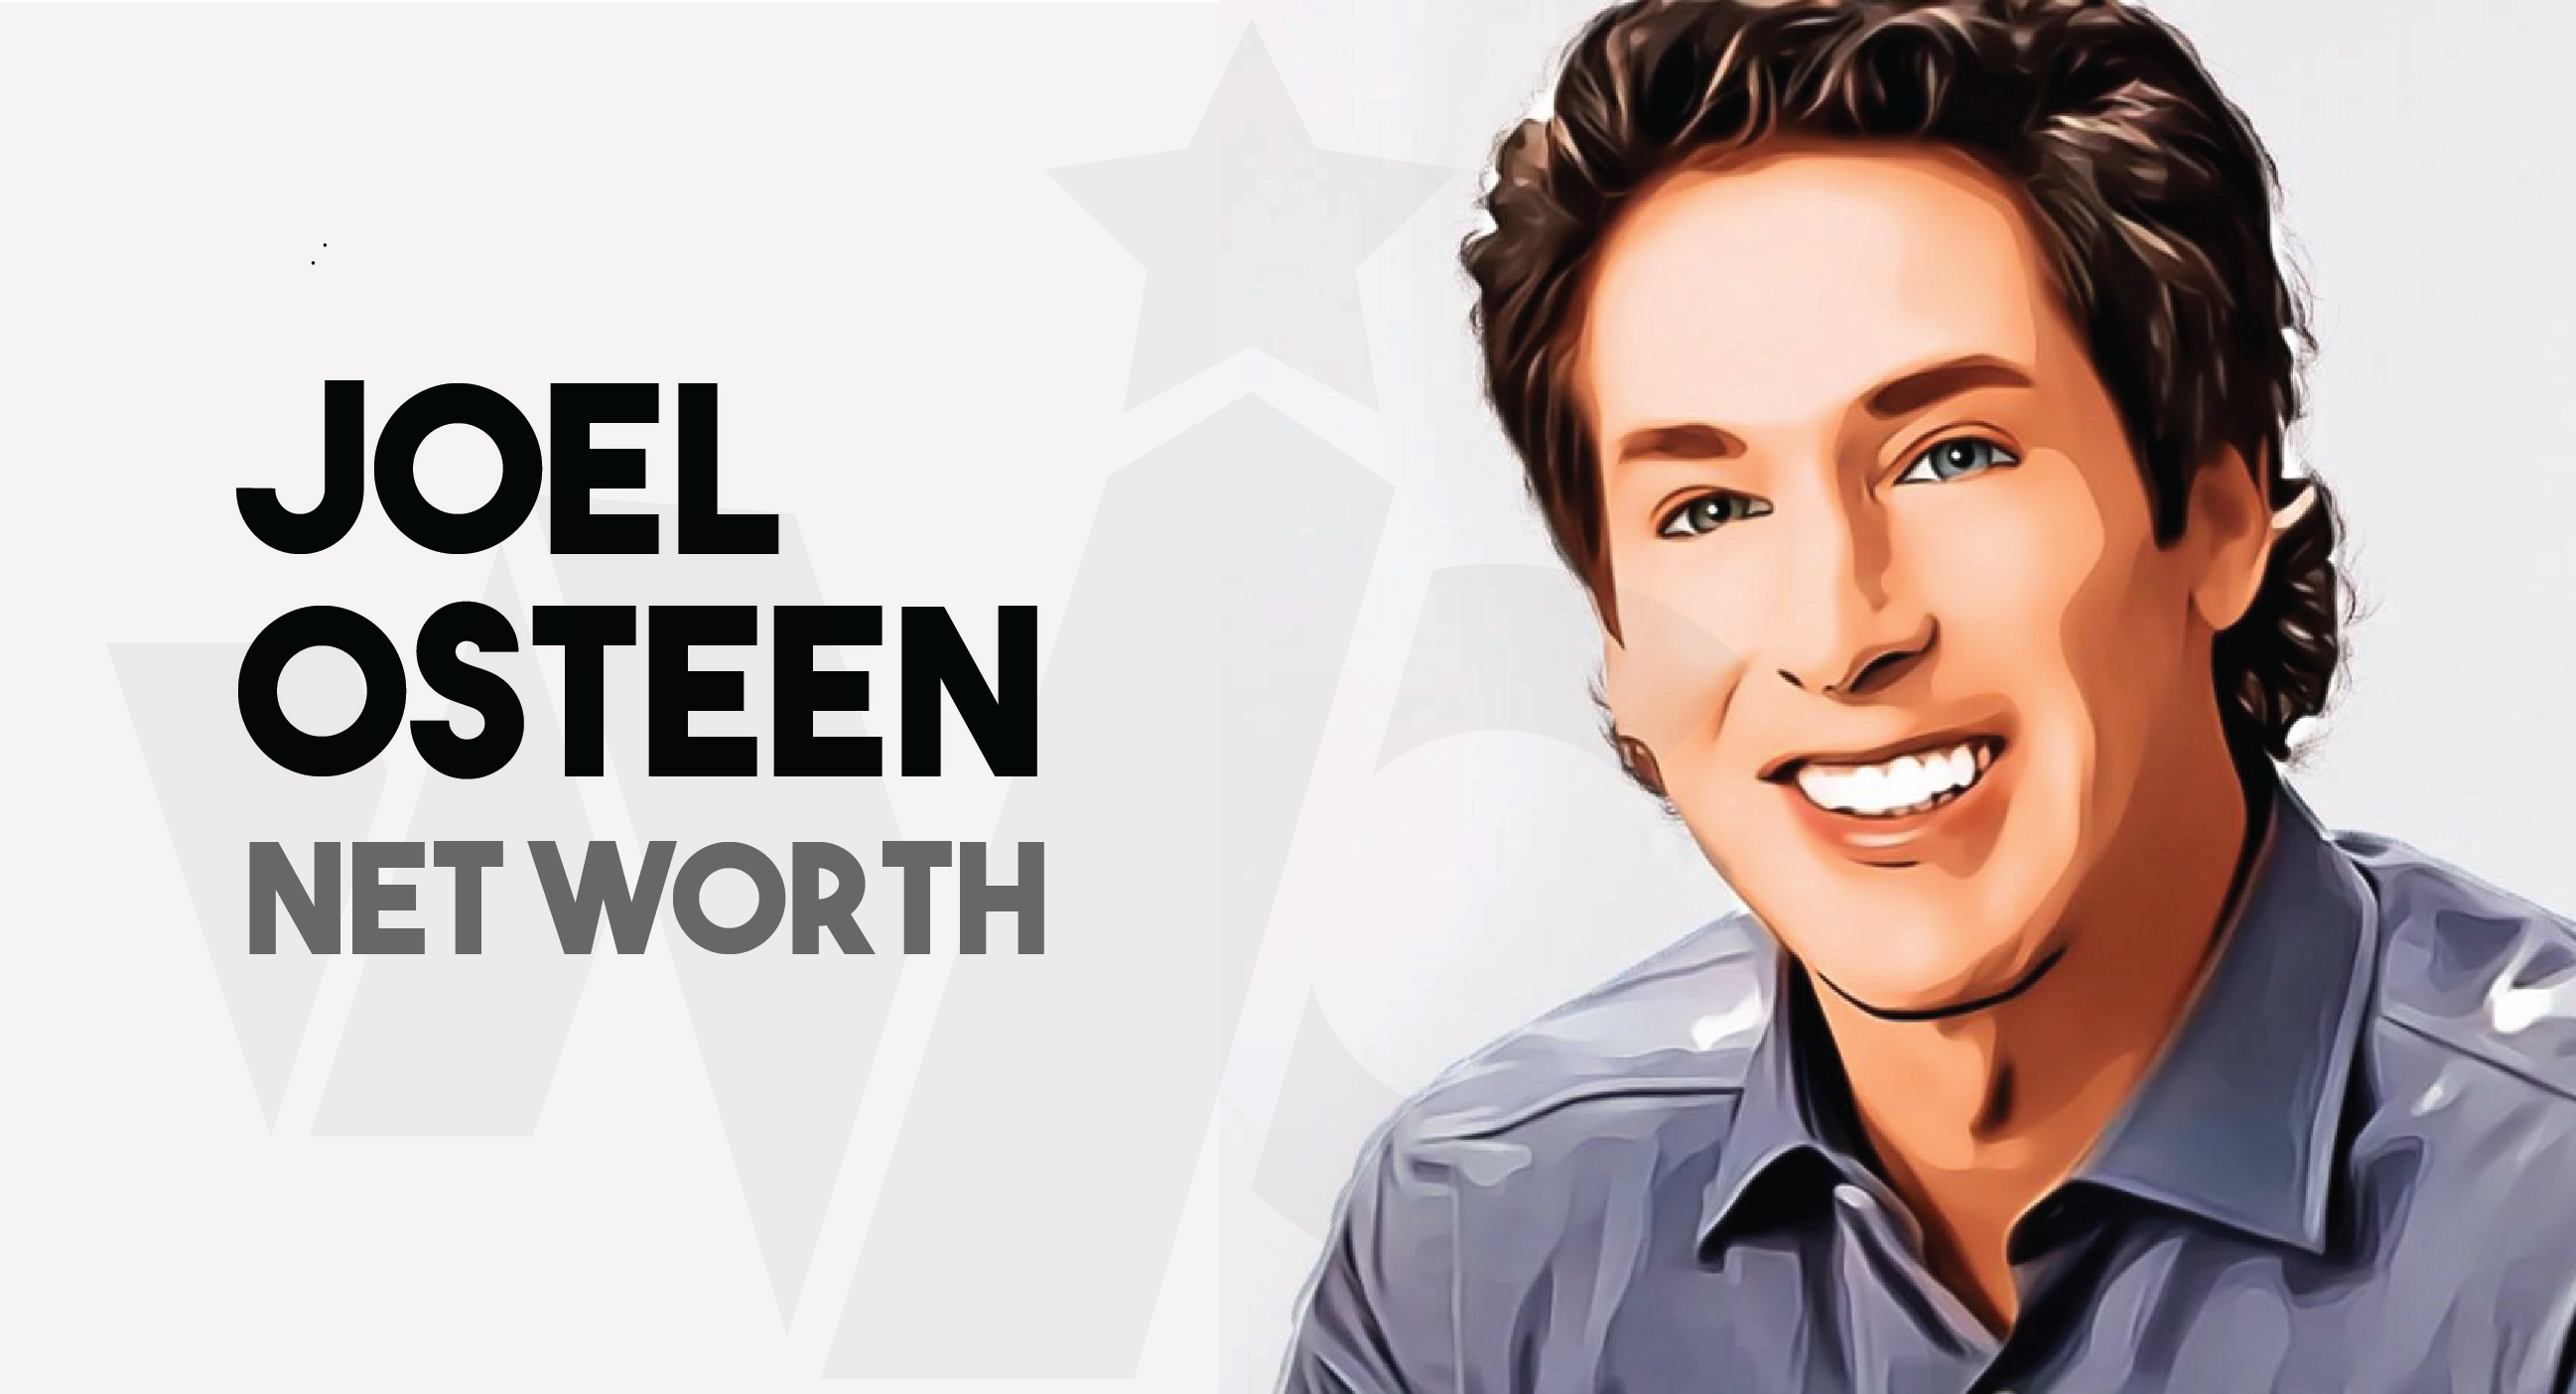 Joel Osteen - Net Worth